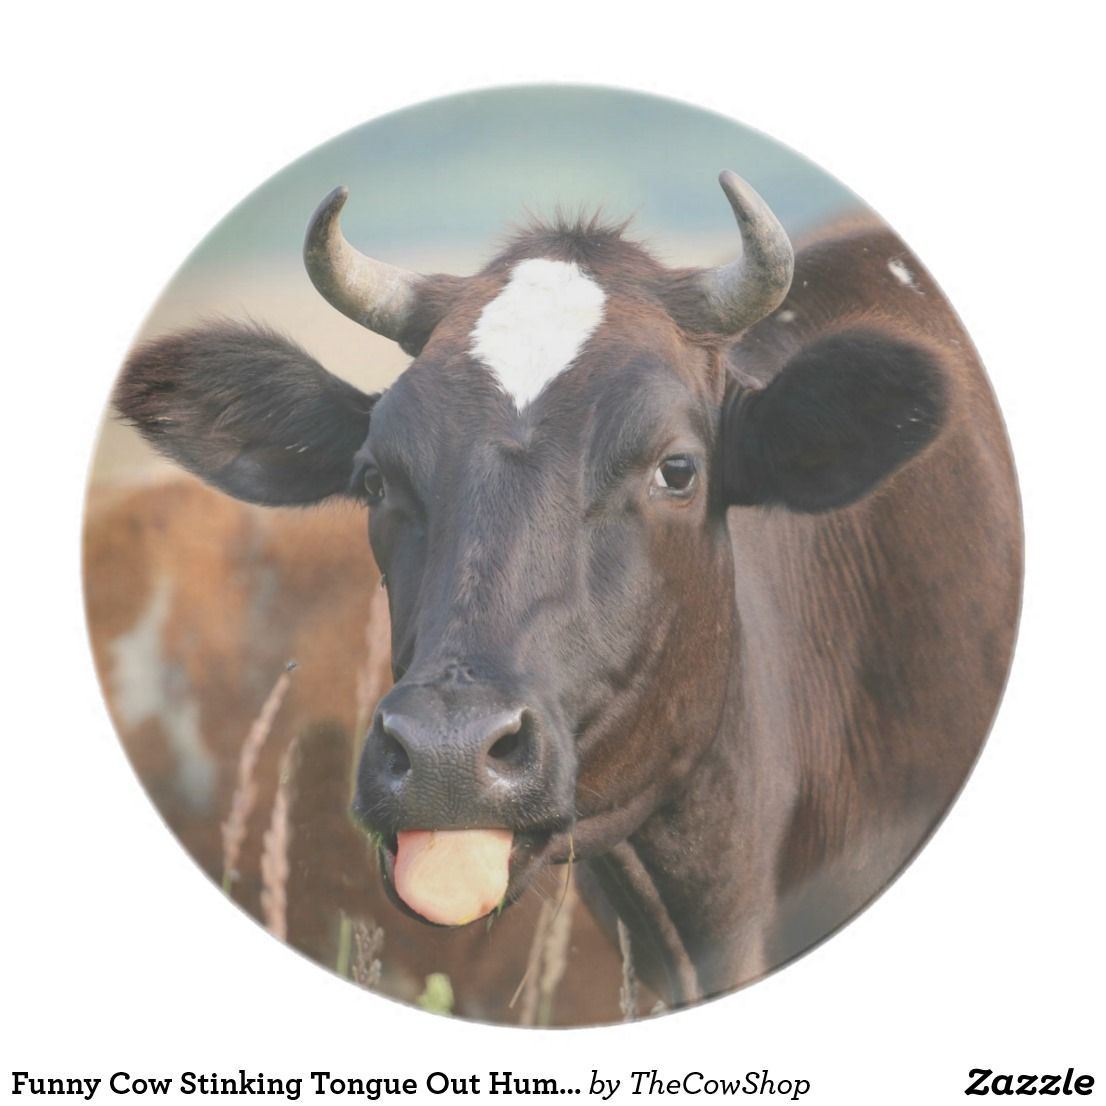 Funny Cow Stinking Tongue Out Humorous Heifer Cute #zazzle #cows #kitchen # plates  sc 1 st  Pinterest & Funny Cow Stinking Tongue Out Humorous Heifer Cute Melamine Plate ...